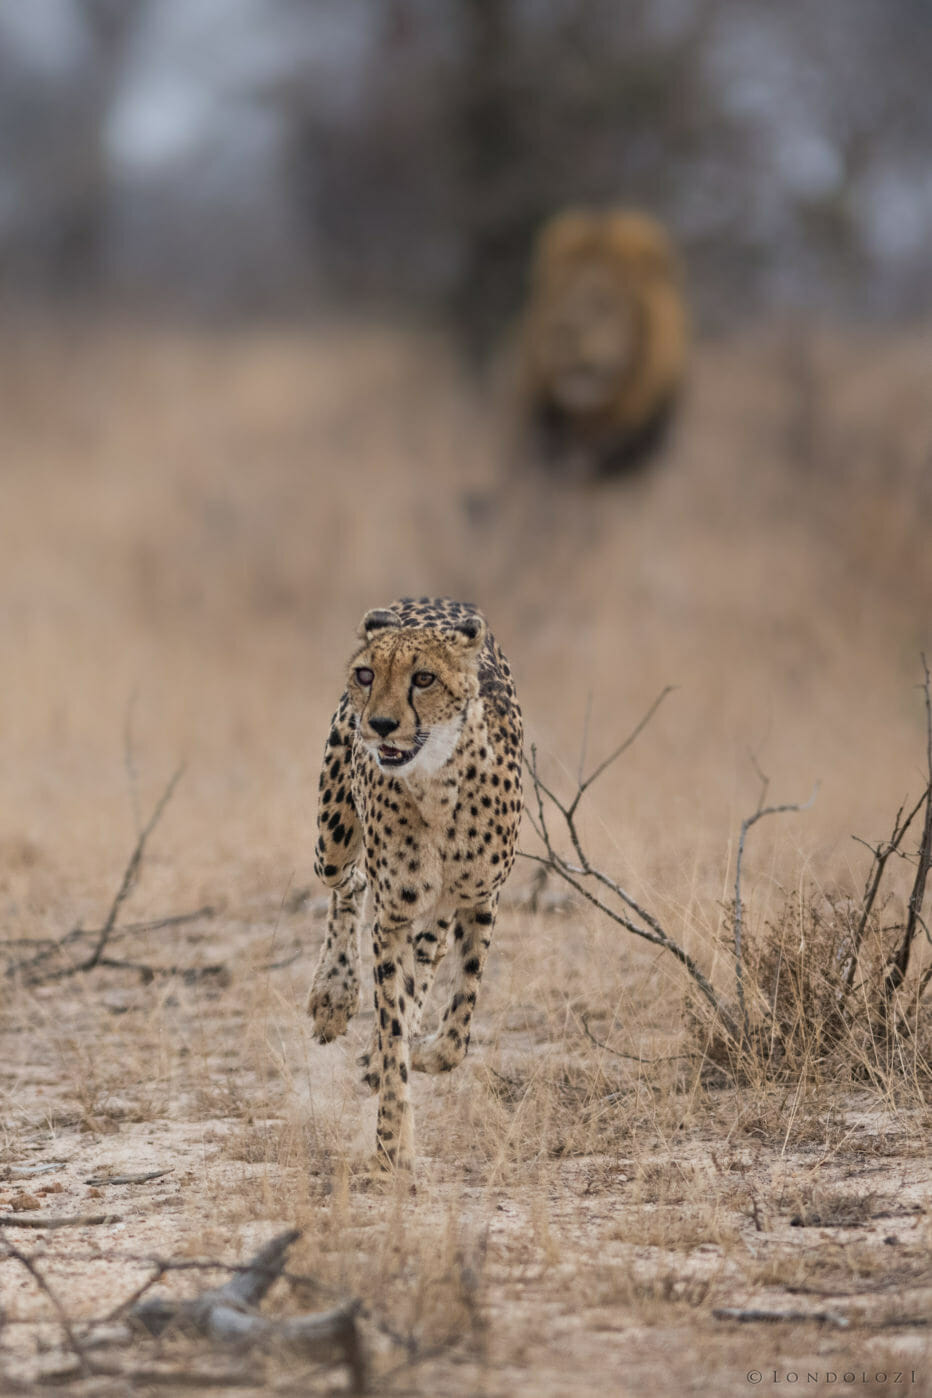 The female cheetah with the silver eye had a brave encounter with a Birmingham male lion at Londolozi